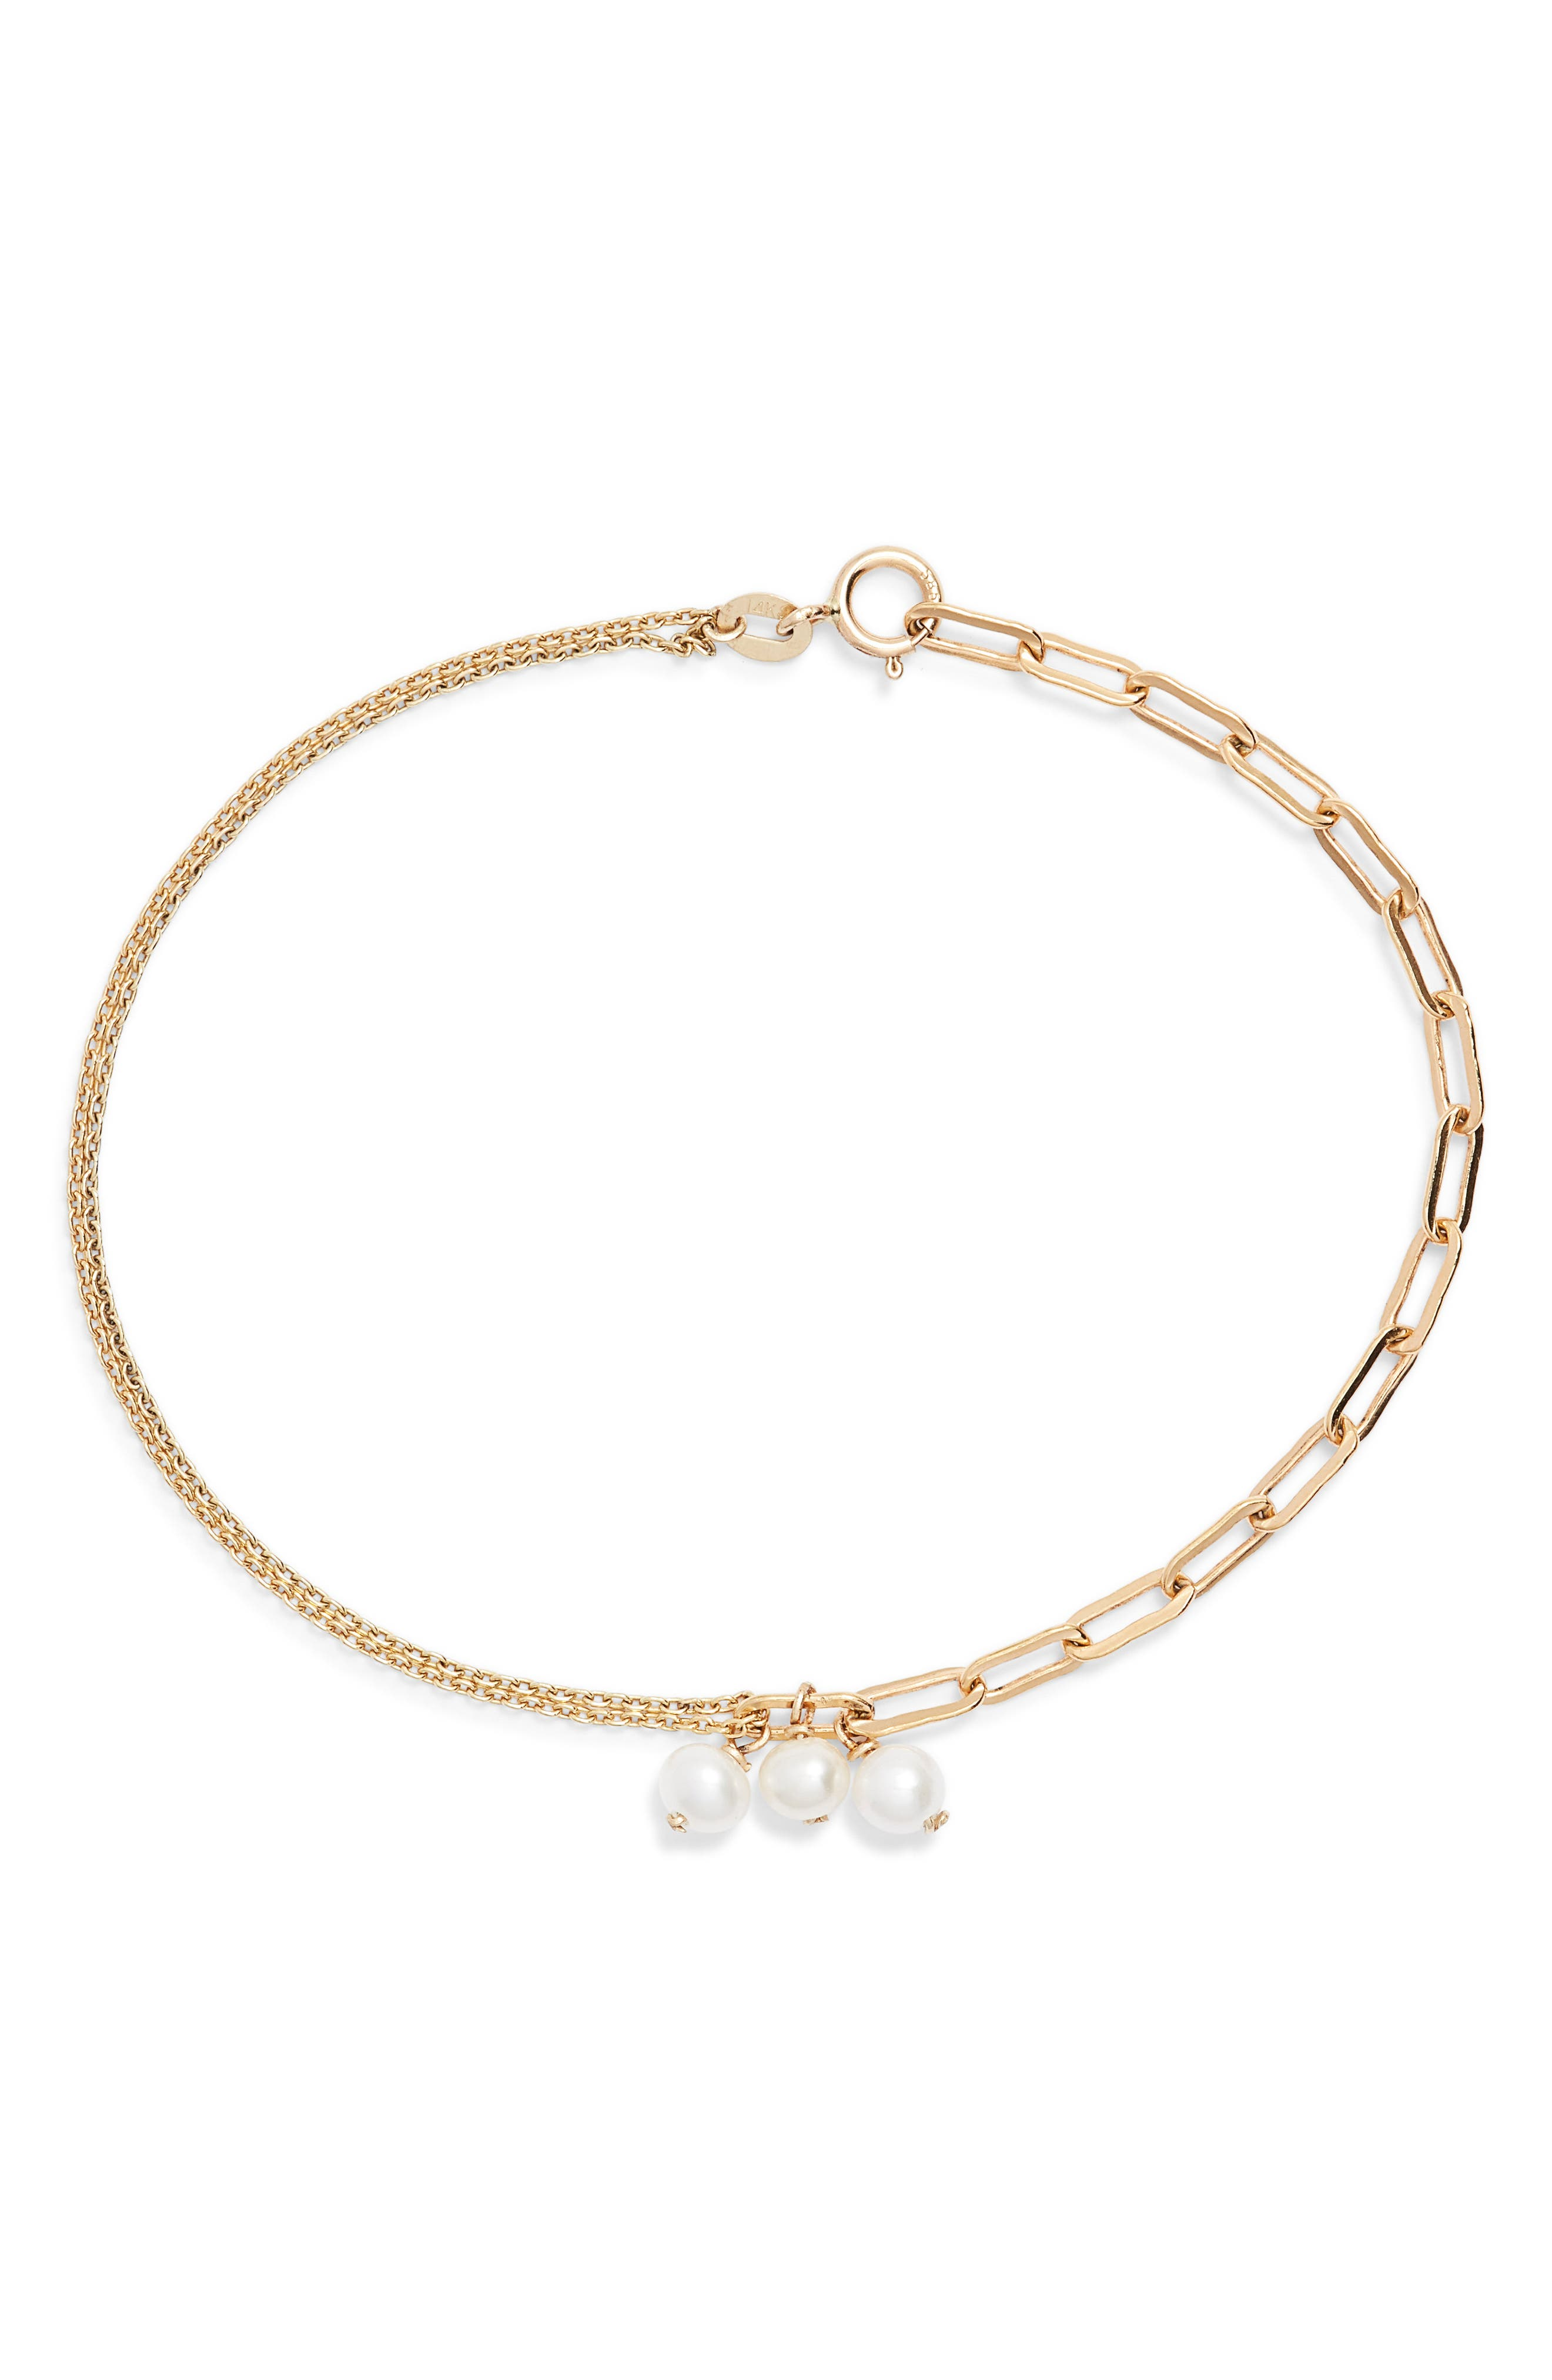 POPPY FINCH,                             Pearl Bracelet,                             Main thumbnail 1, color,                             YELLOW GOLD/ PEARL